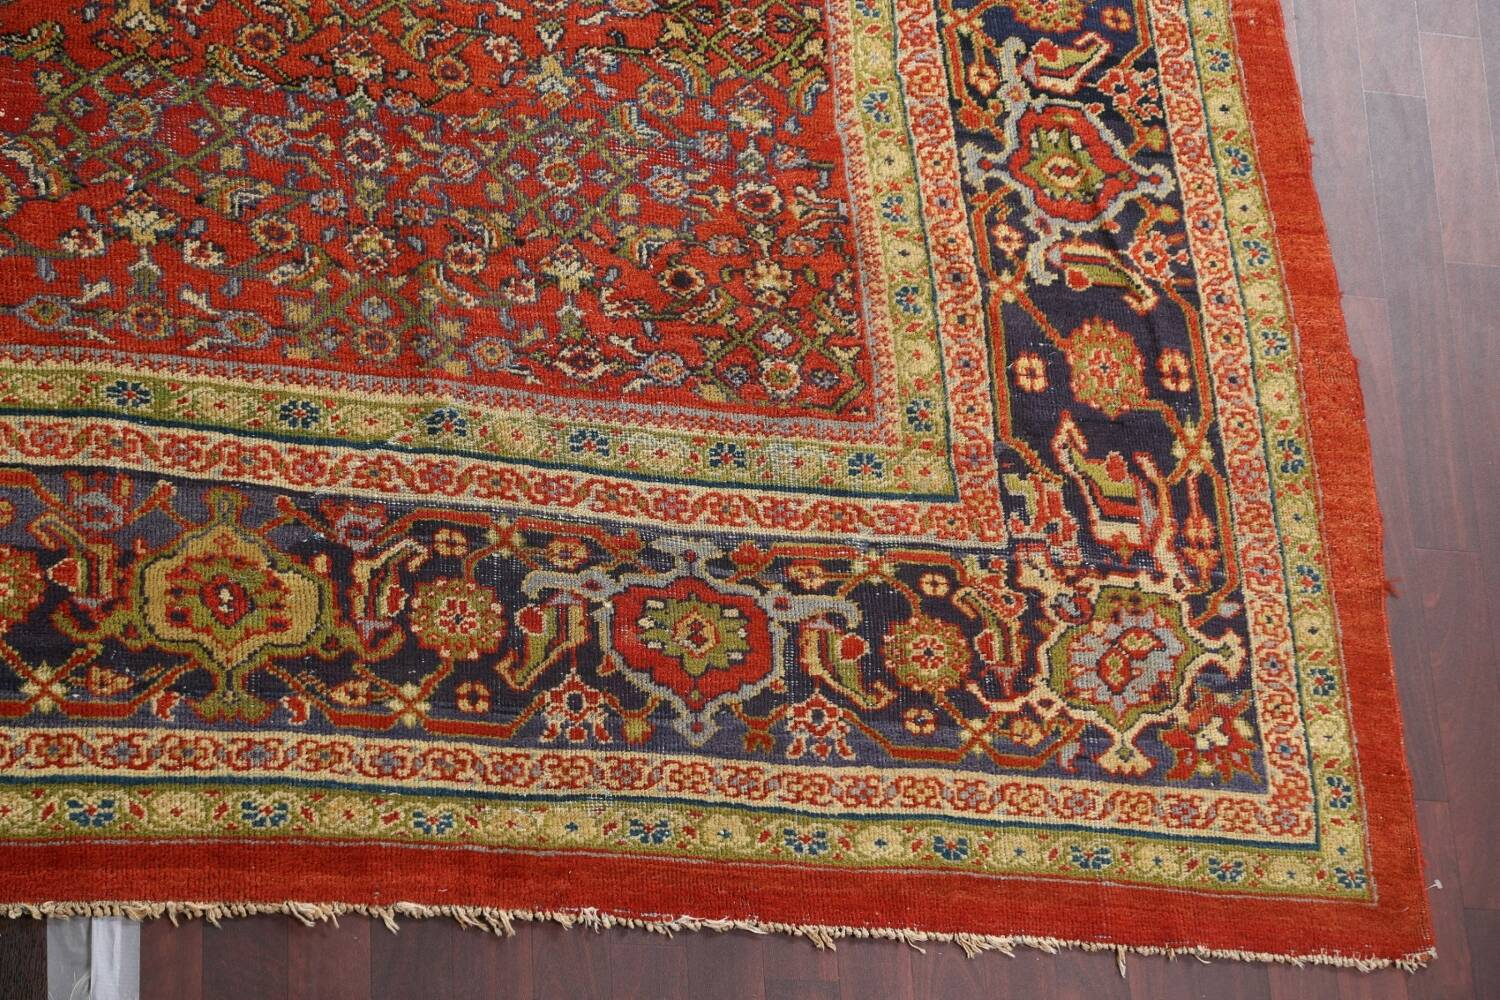 Pre-1900 Antique Vegetable Dye Sultanabad Persian Rug 15x22 image 7